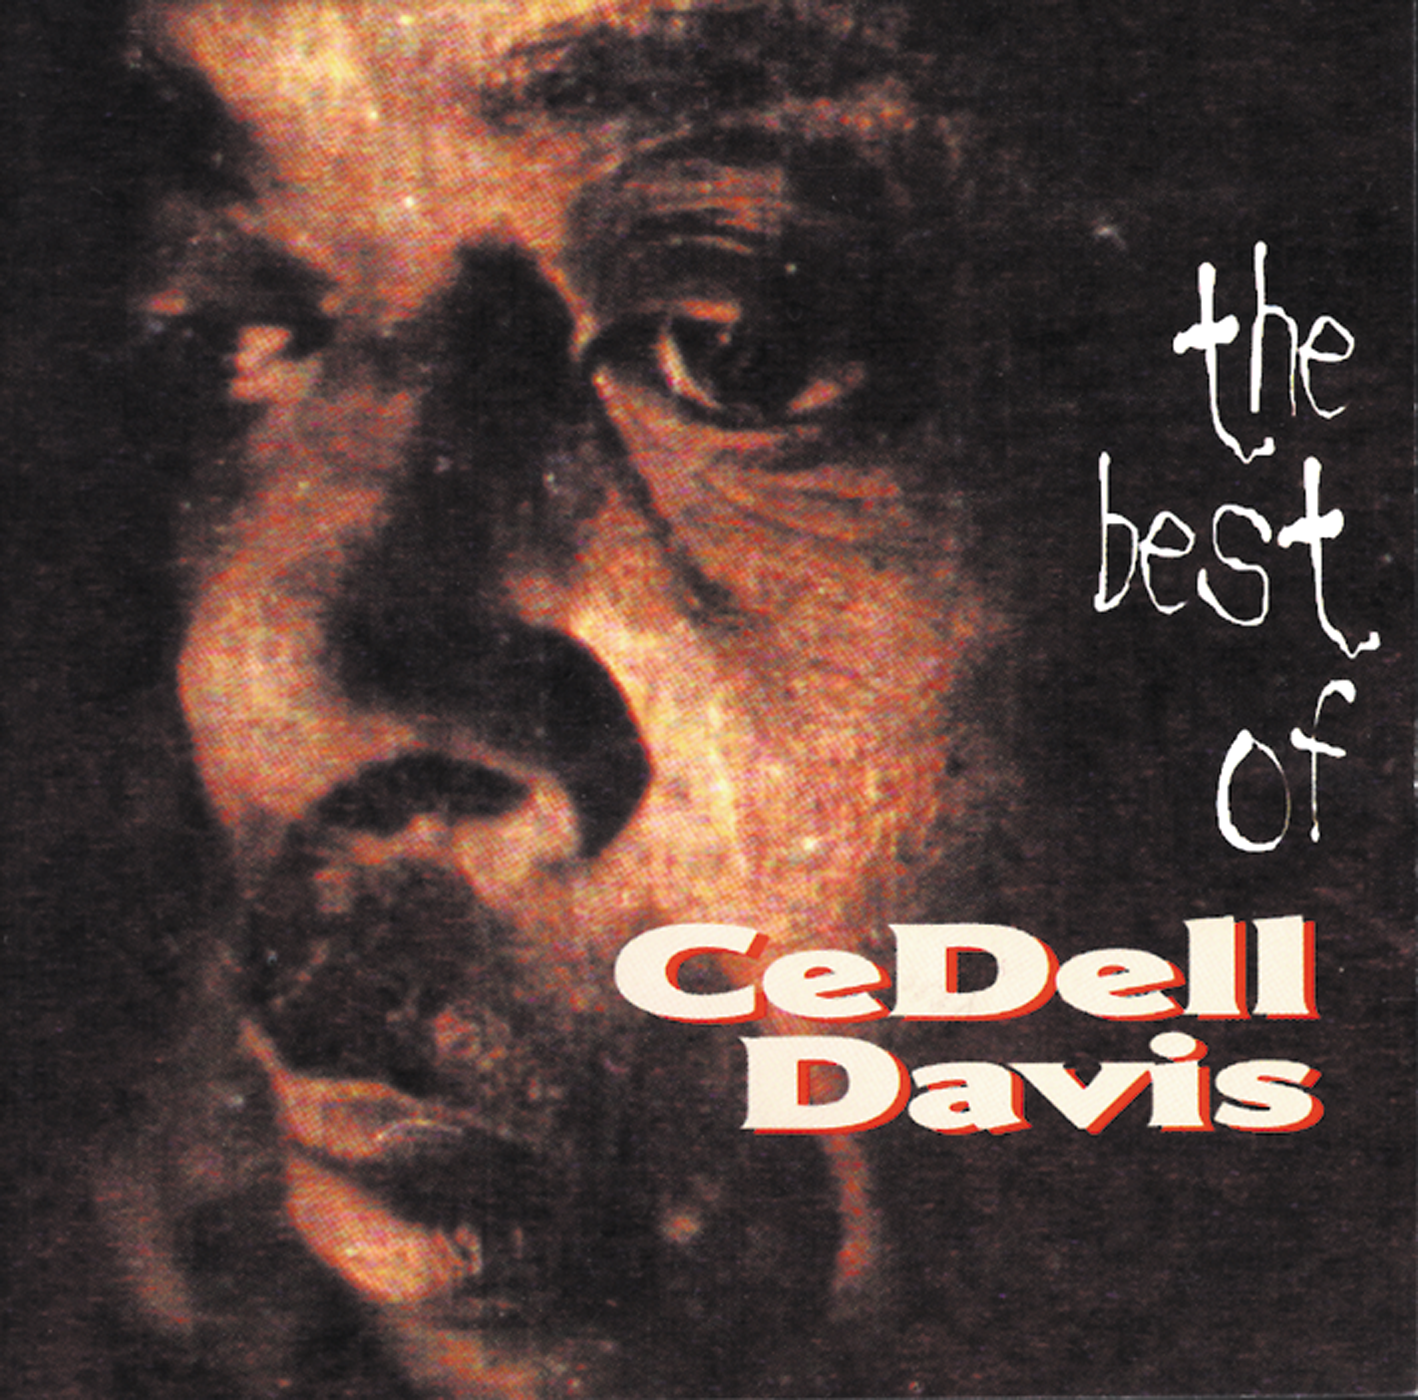 cedell davis photo.png